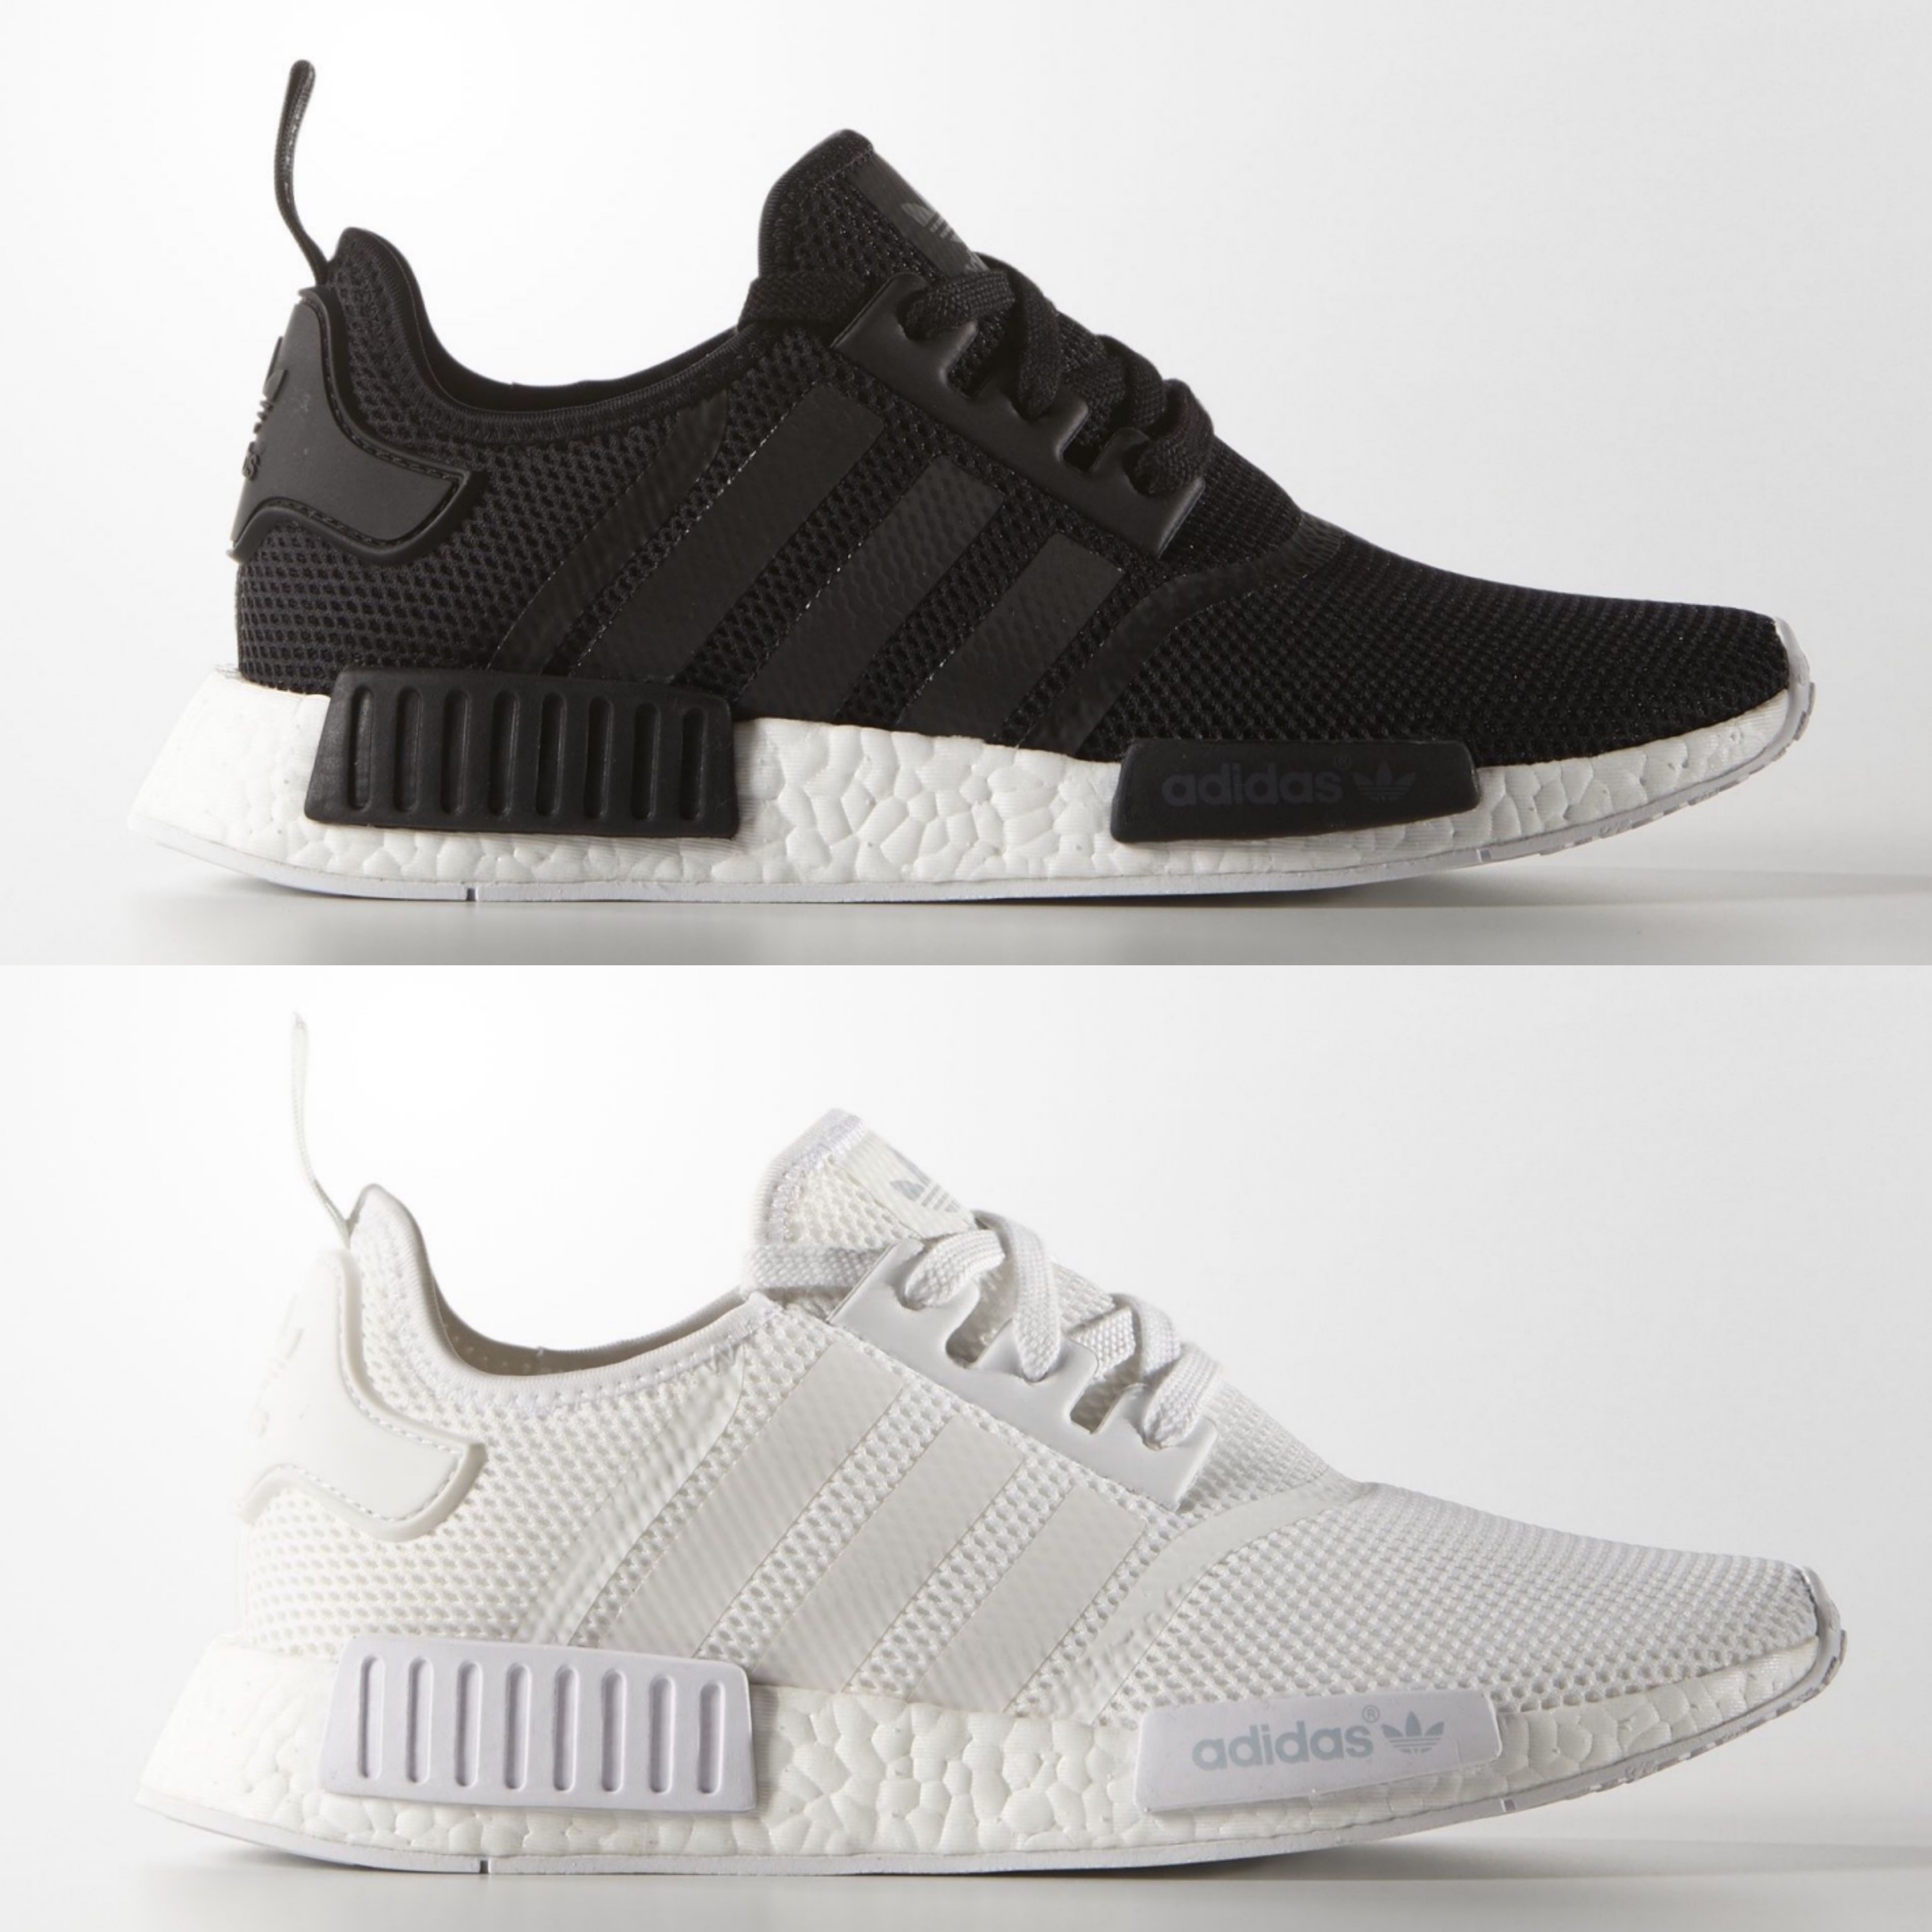 86370c5c30230c Adidas Nmd R1 White With Black kenmore-cleaning.co.uk